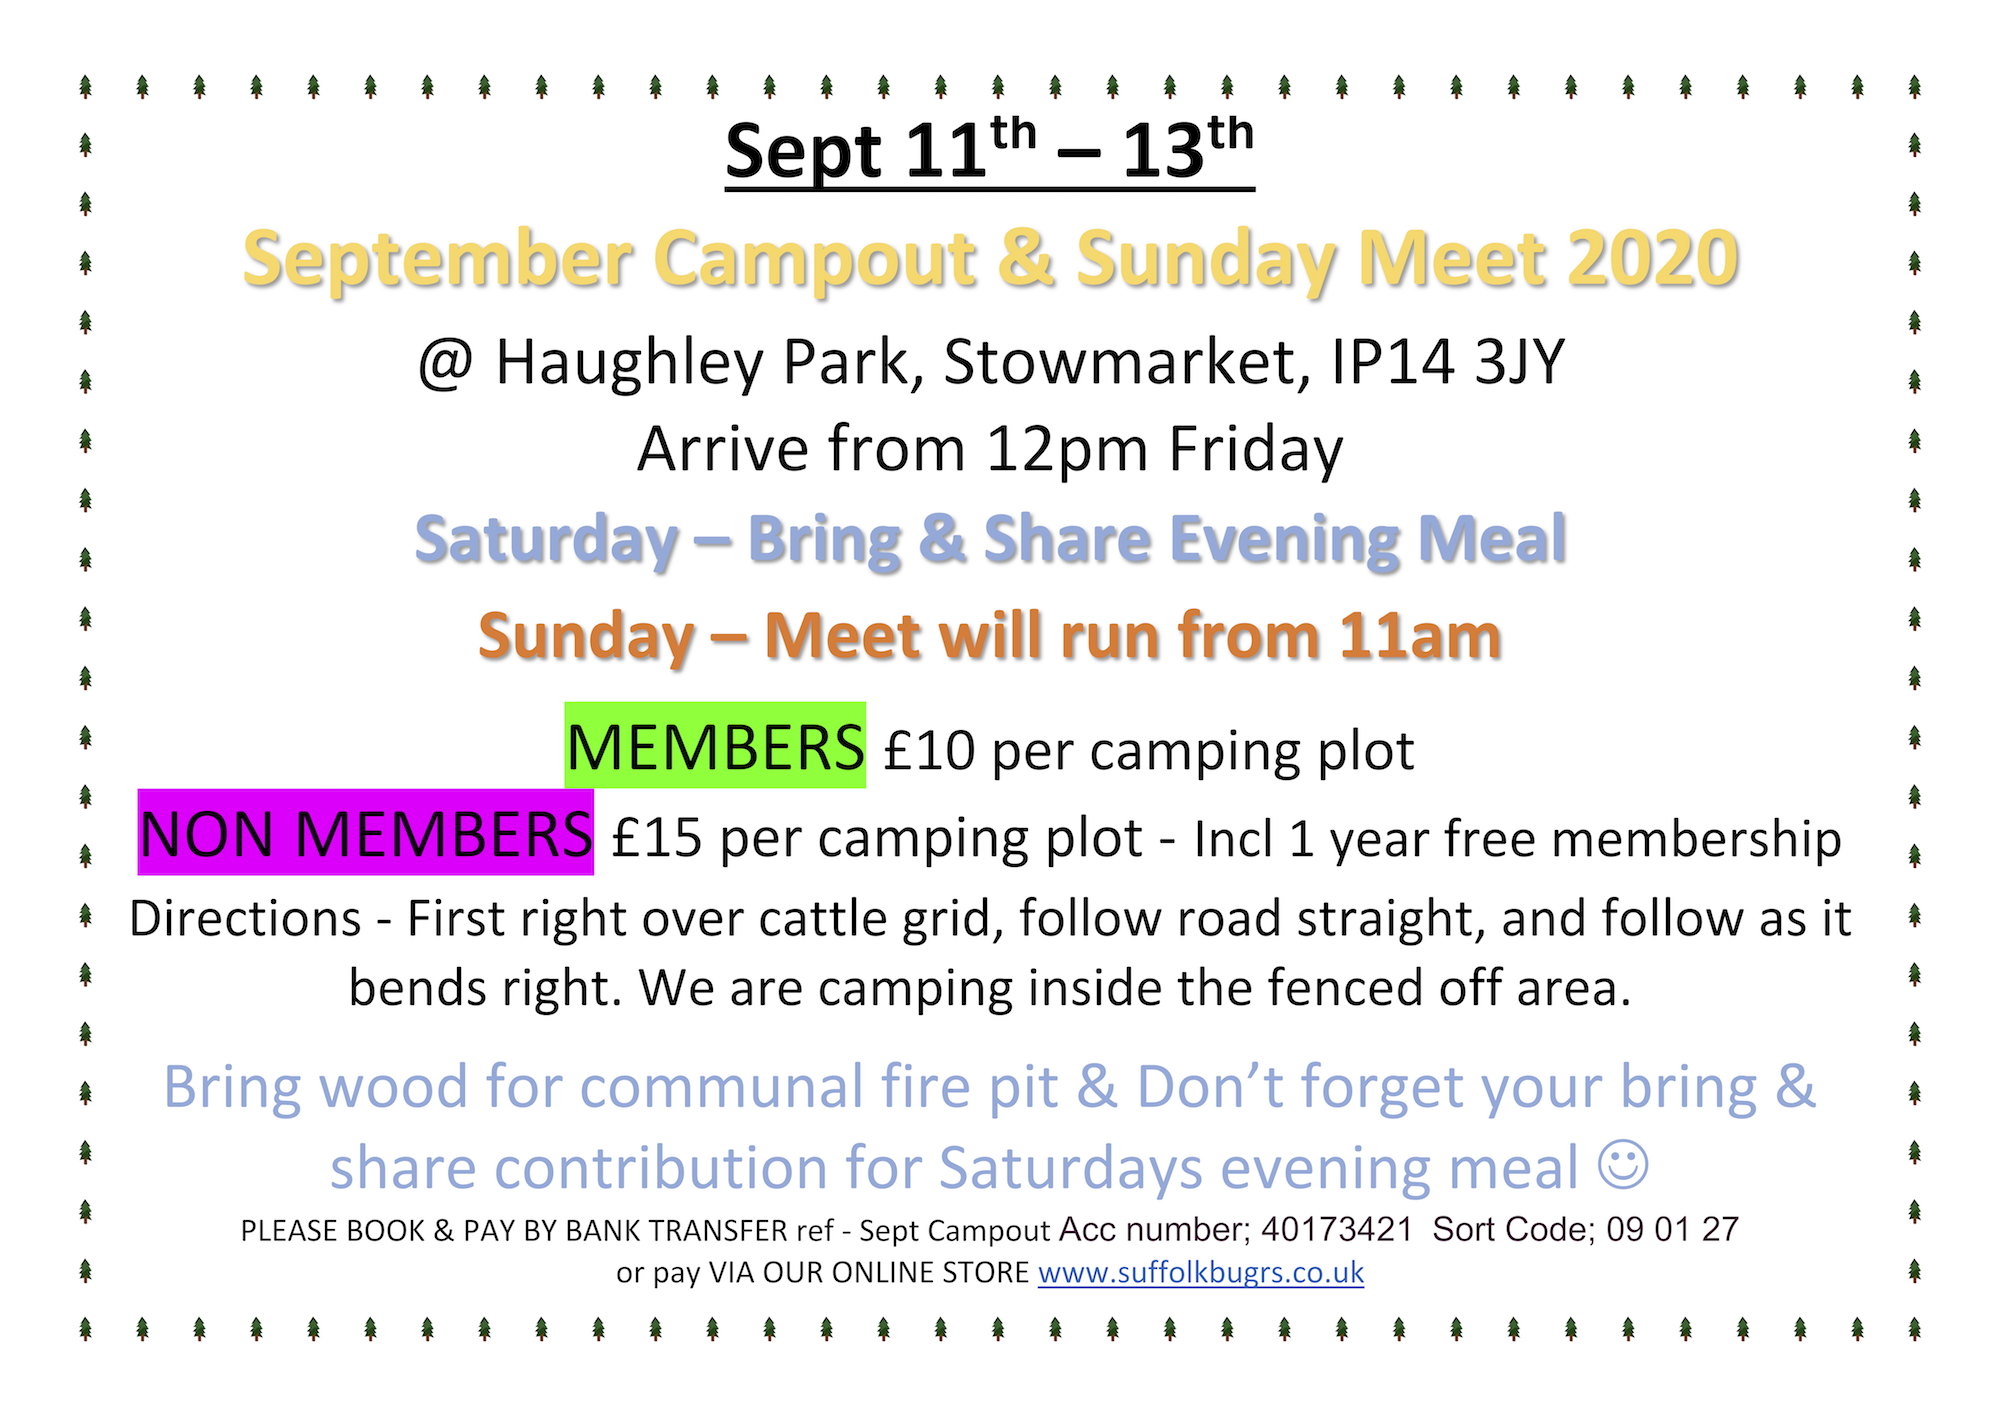 September Campout & Meet